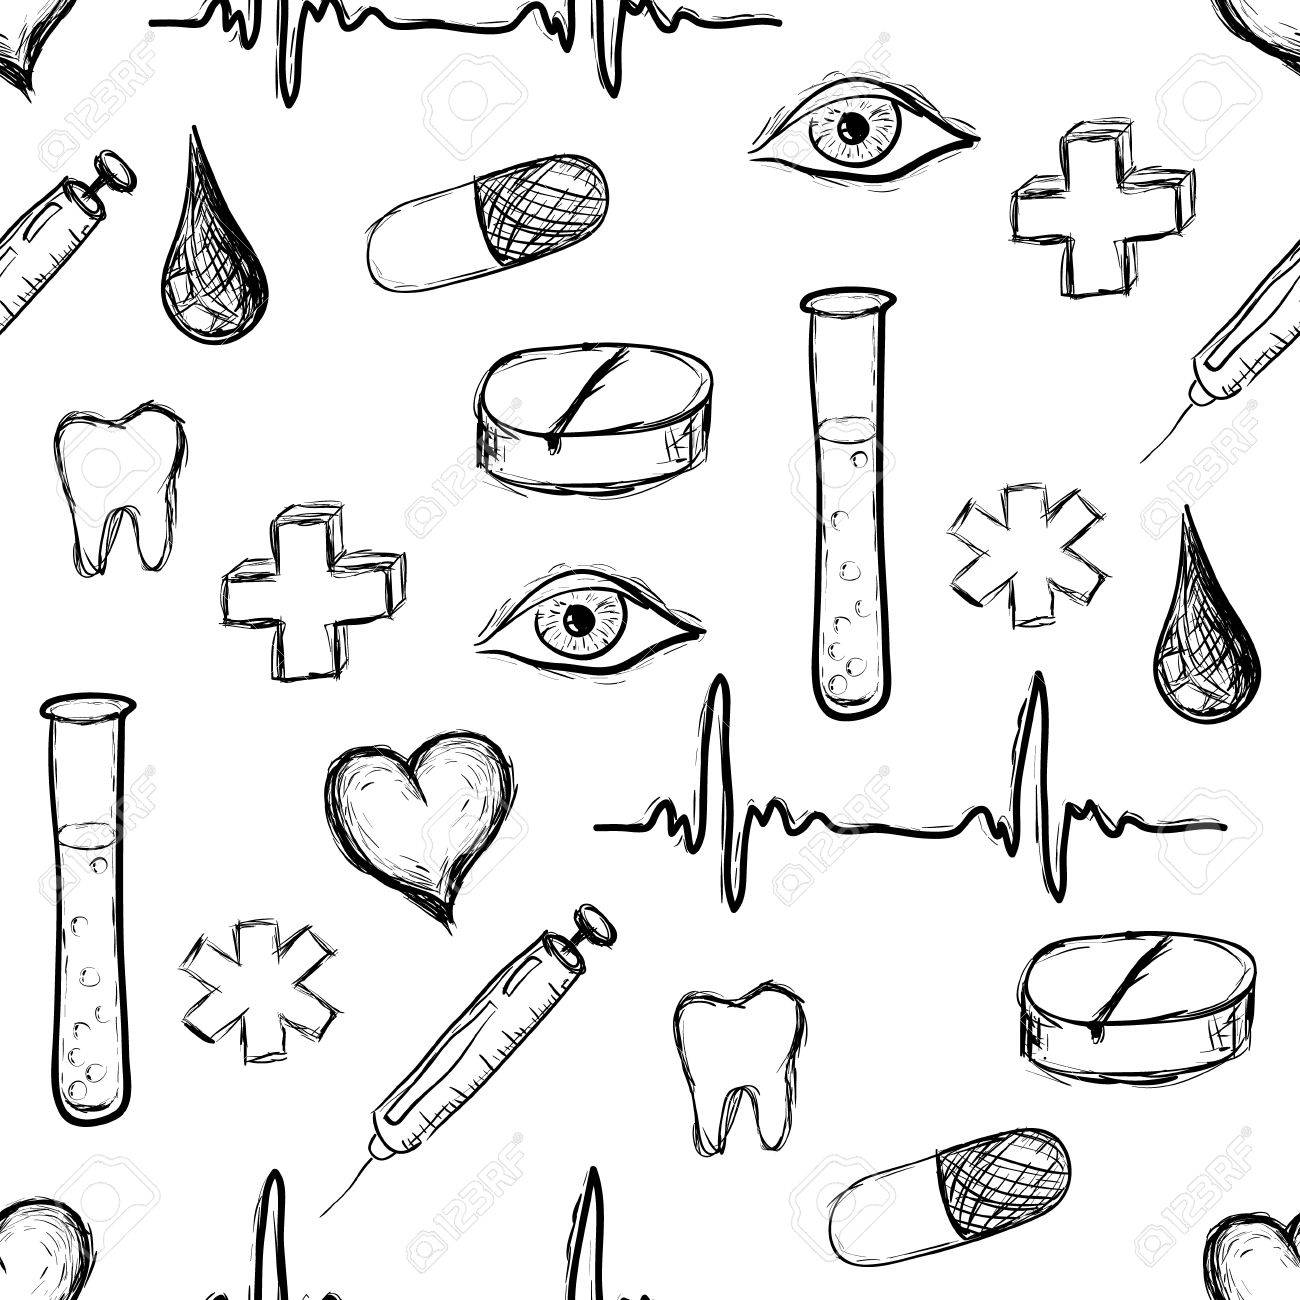 medical seamless pattern Stock Vector - 11538546